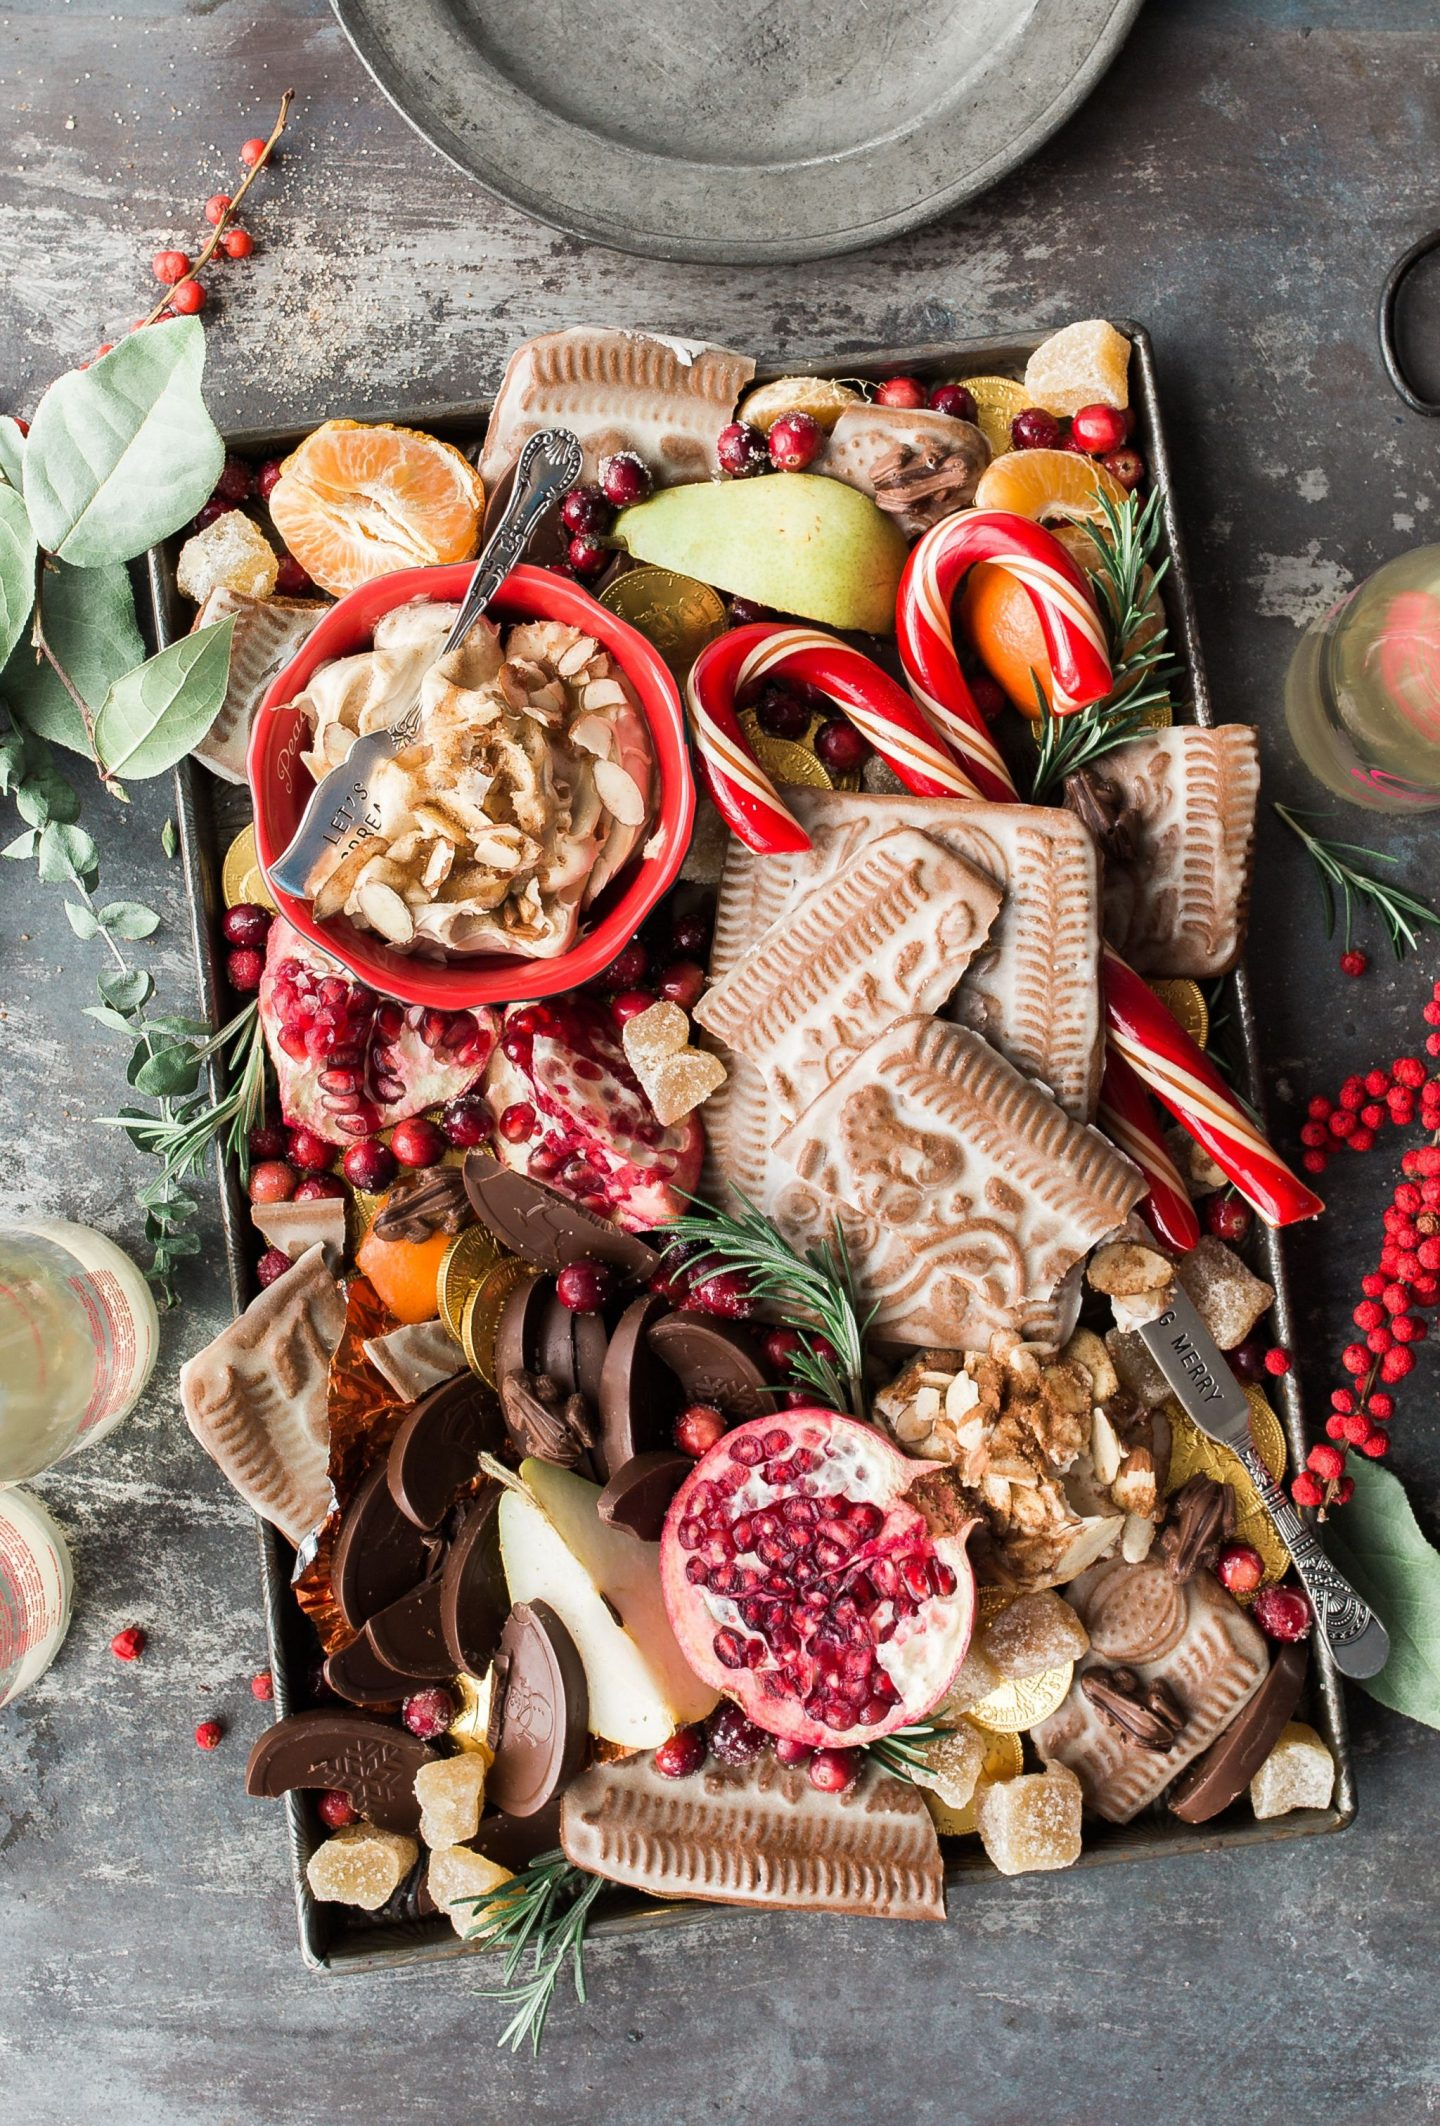 Fruits and veggies platter for stress-free holiday entertaining